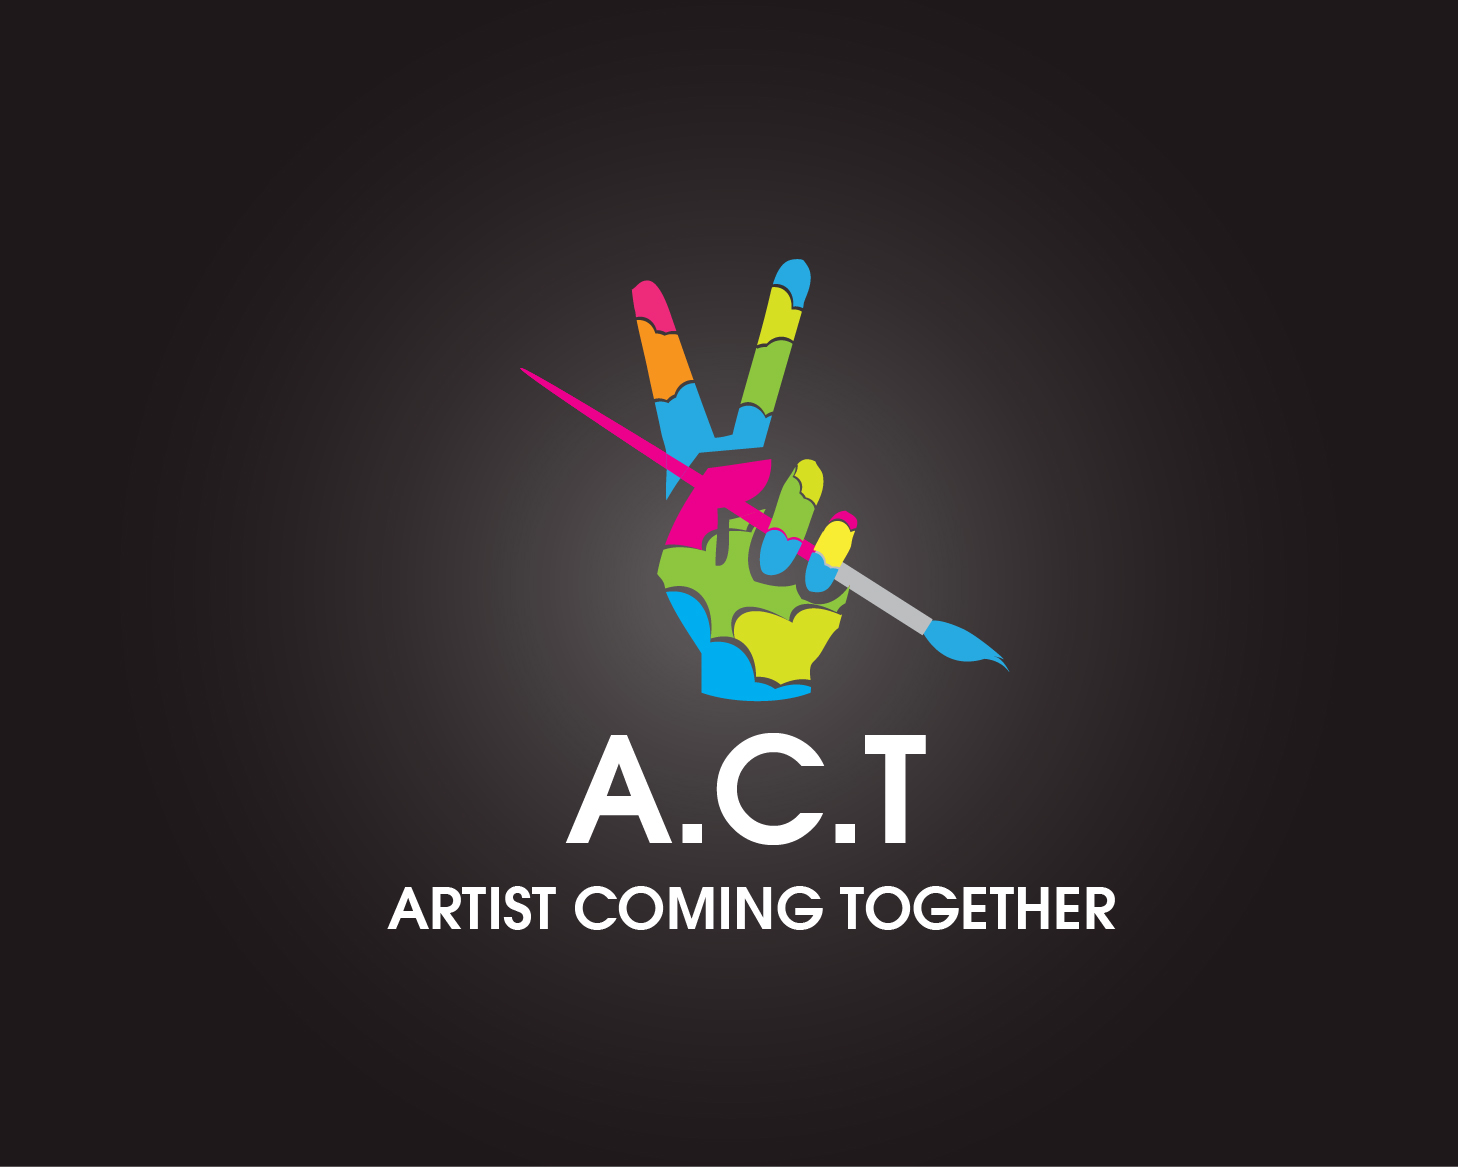 Logo Design by gabbyadingail - Entry No. 63 in the Logo Design Contest Creative Logo Design for A.C.T. Artists Coming Together.